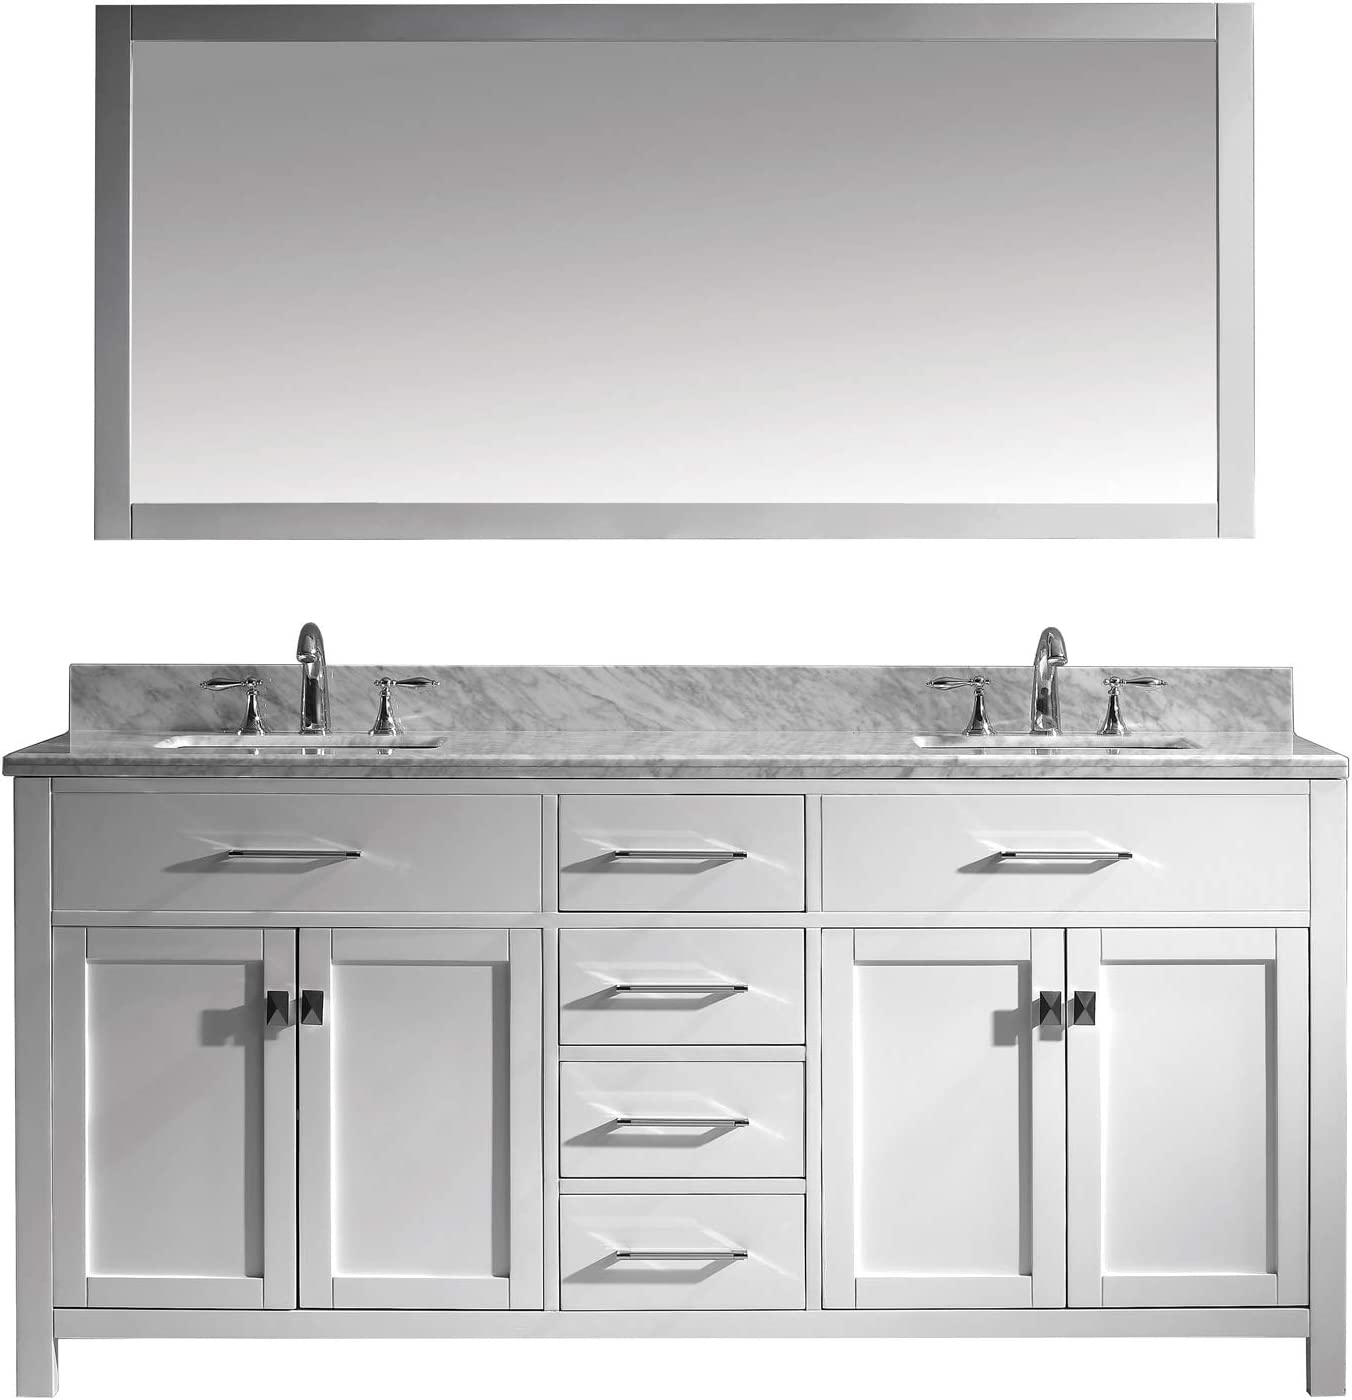 Virtu Usa Md 2072 Wmsq Wh Caroline Bathroom Vanity 72 Inches White Double Vanity With Marble Top